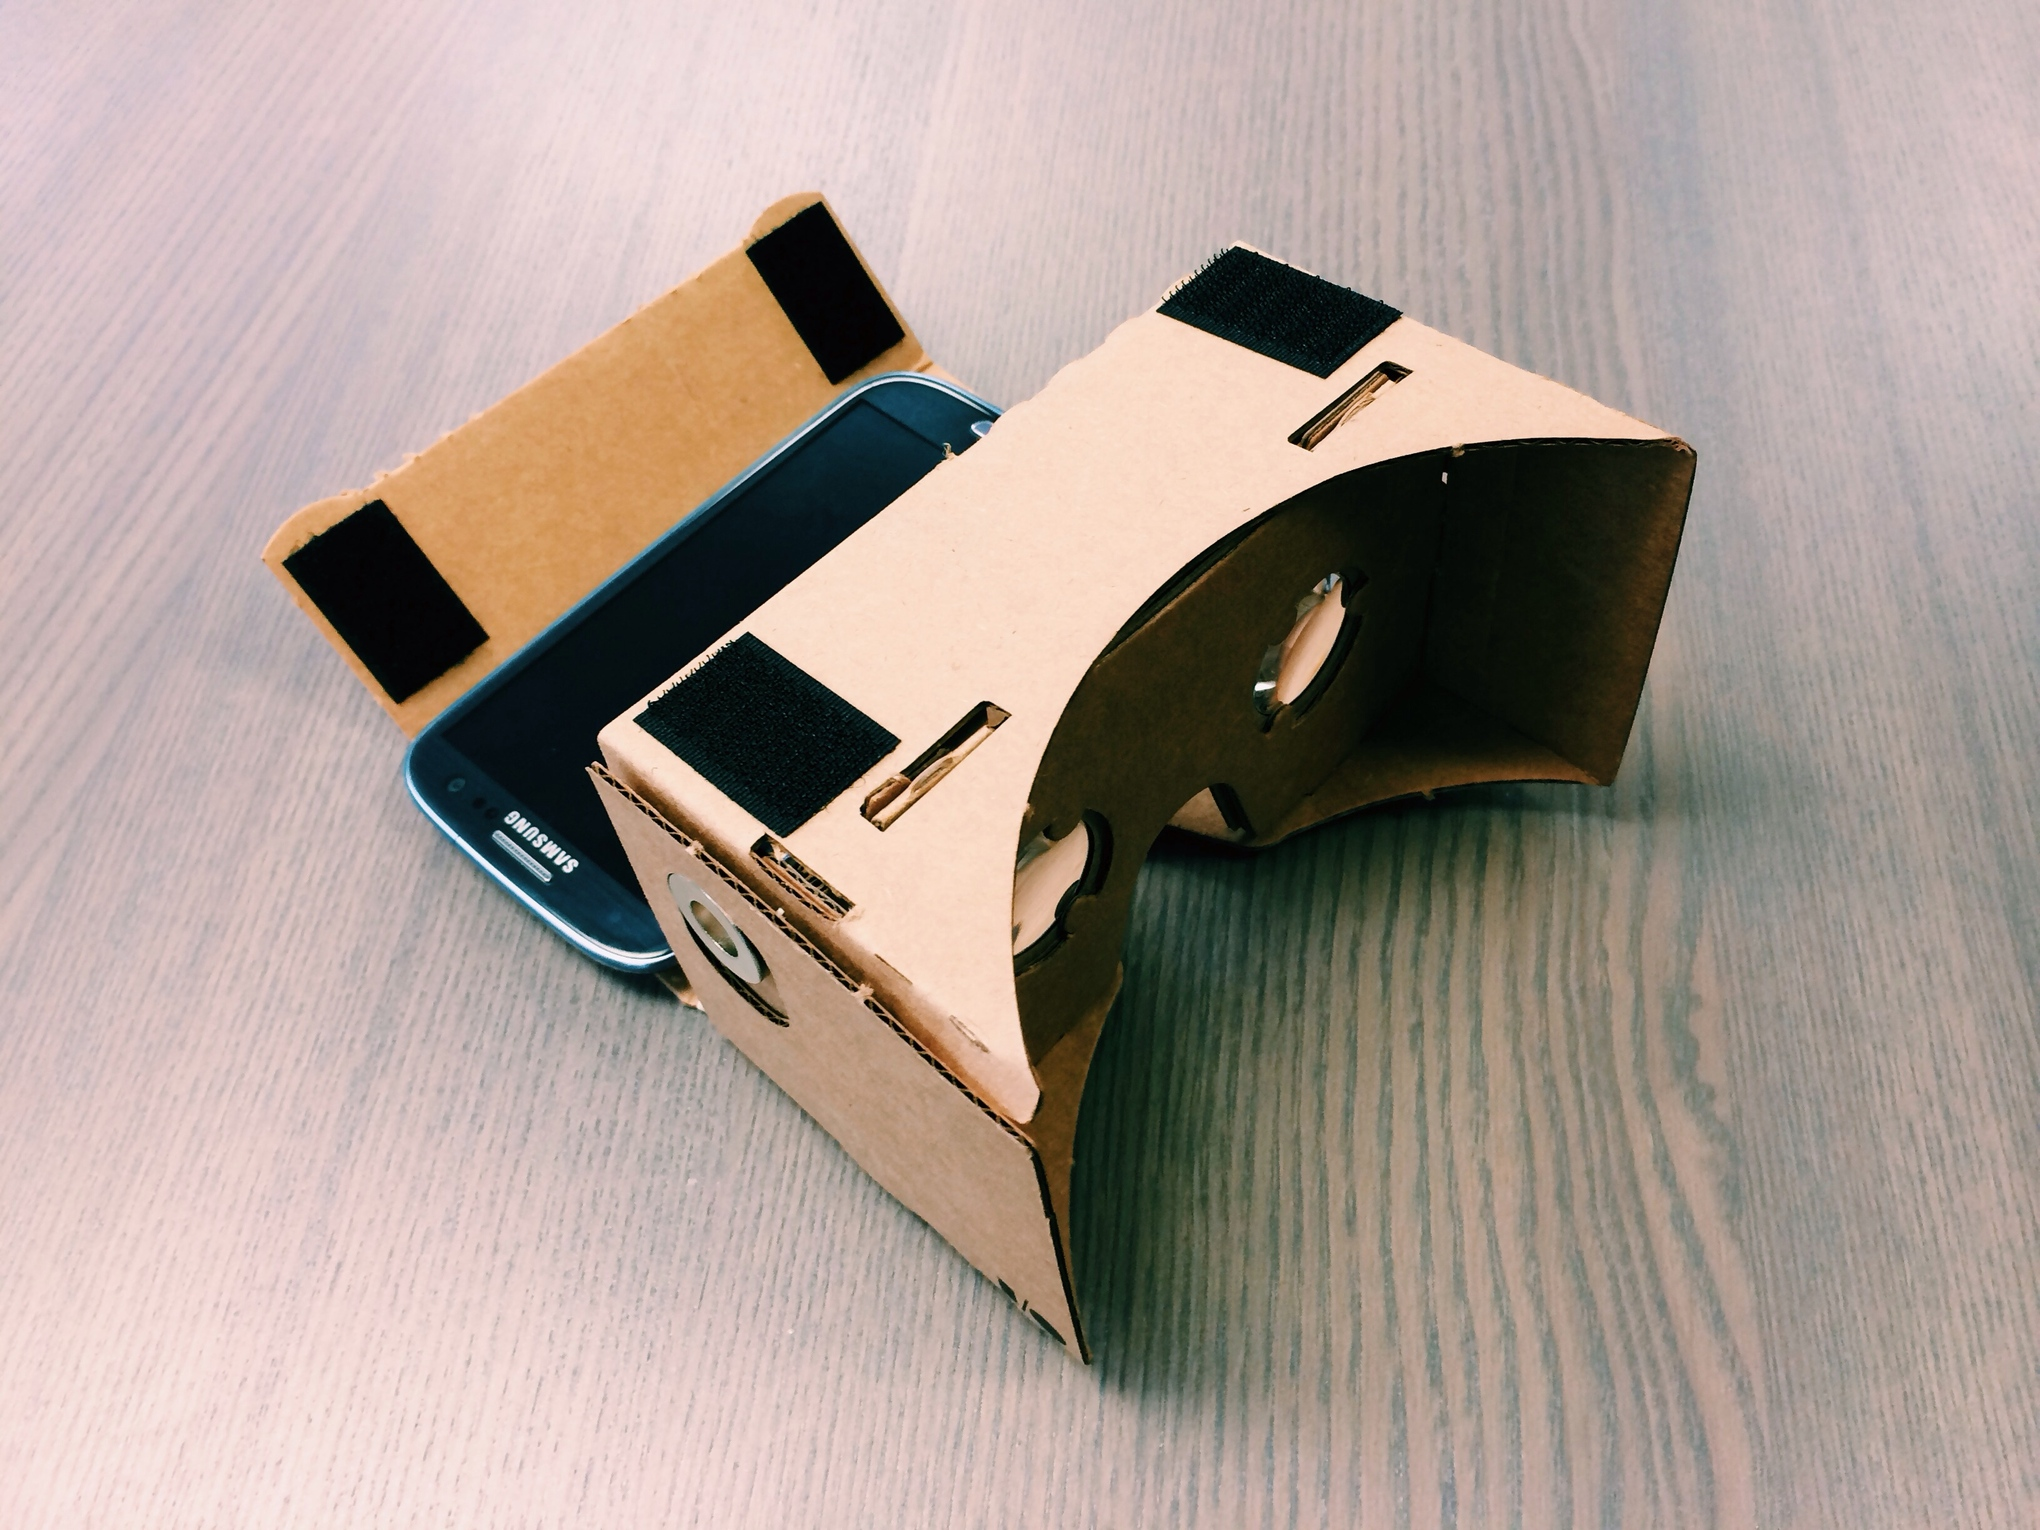 How to make a VR headset with a pizza box, smartphone and $21 worth of tech